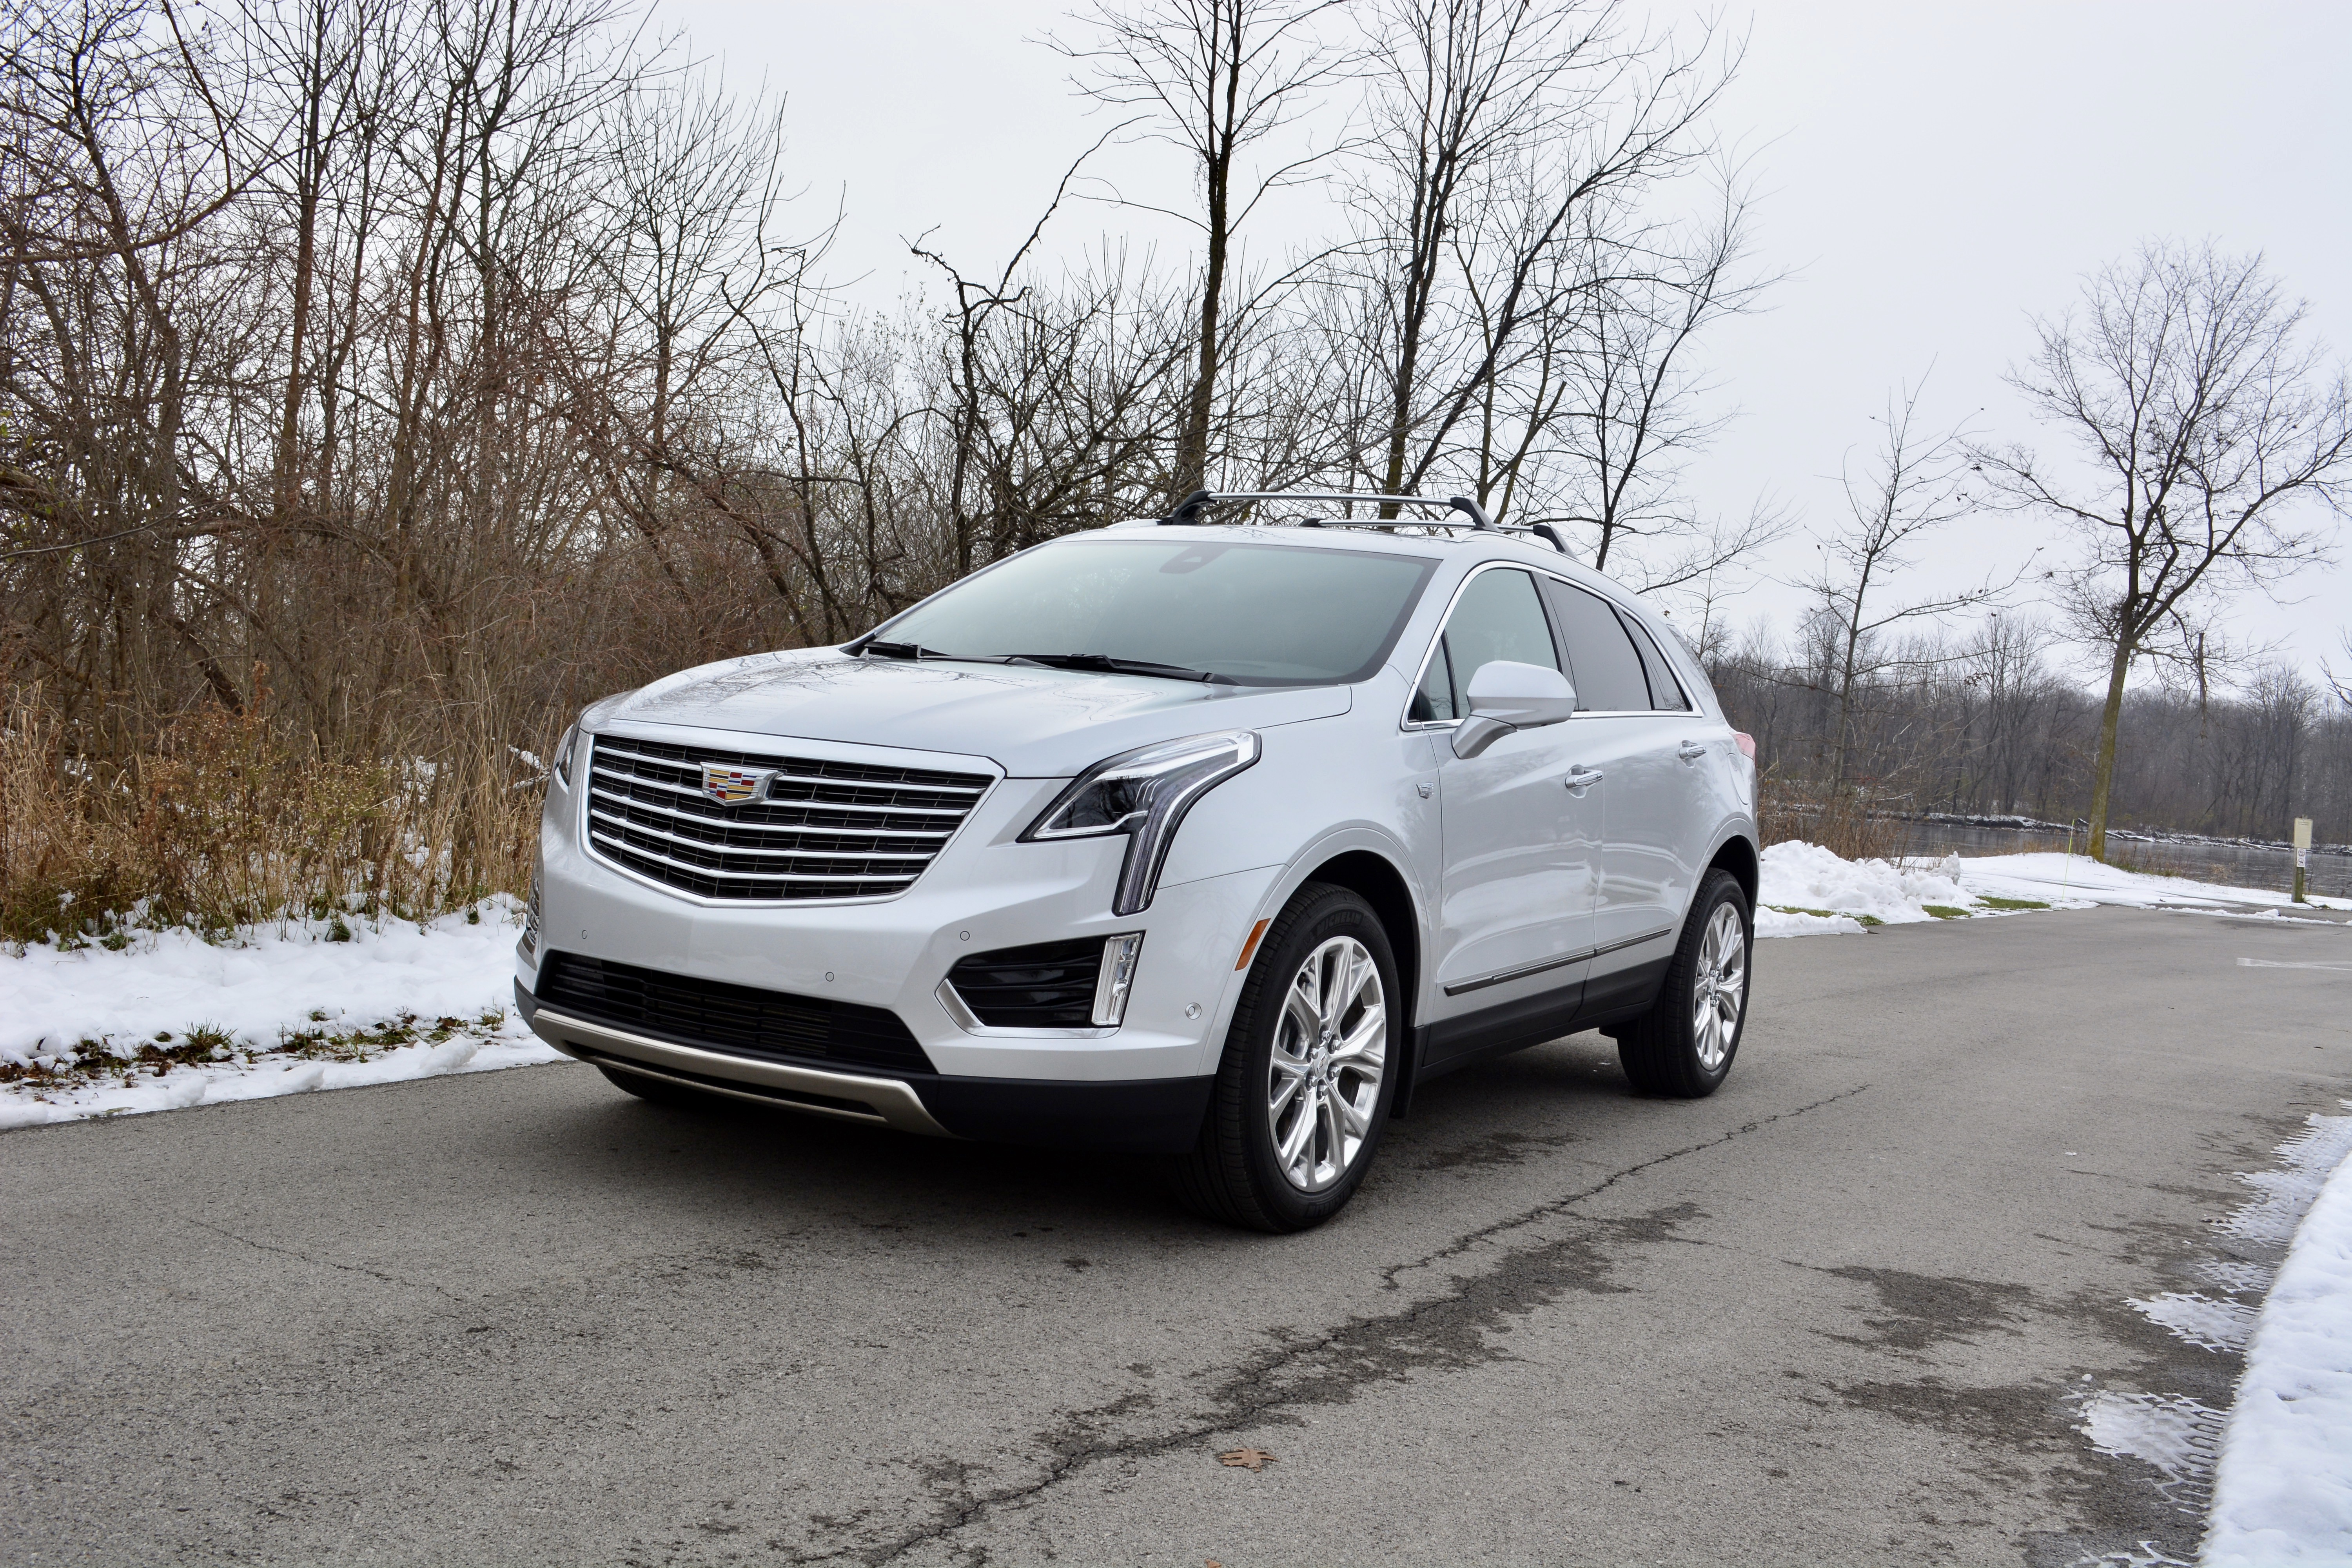 Cadillac XT5 mod specifications